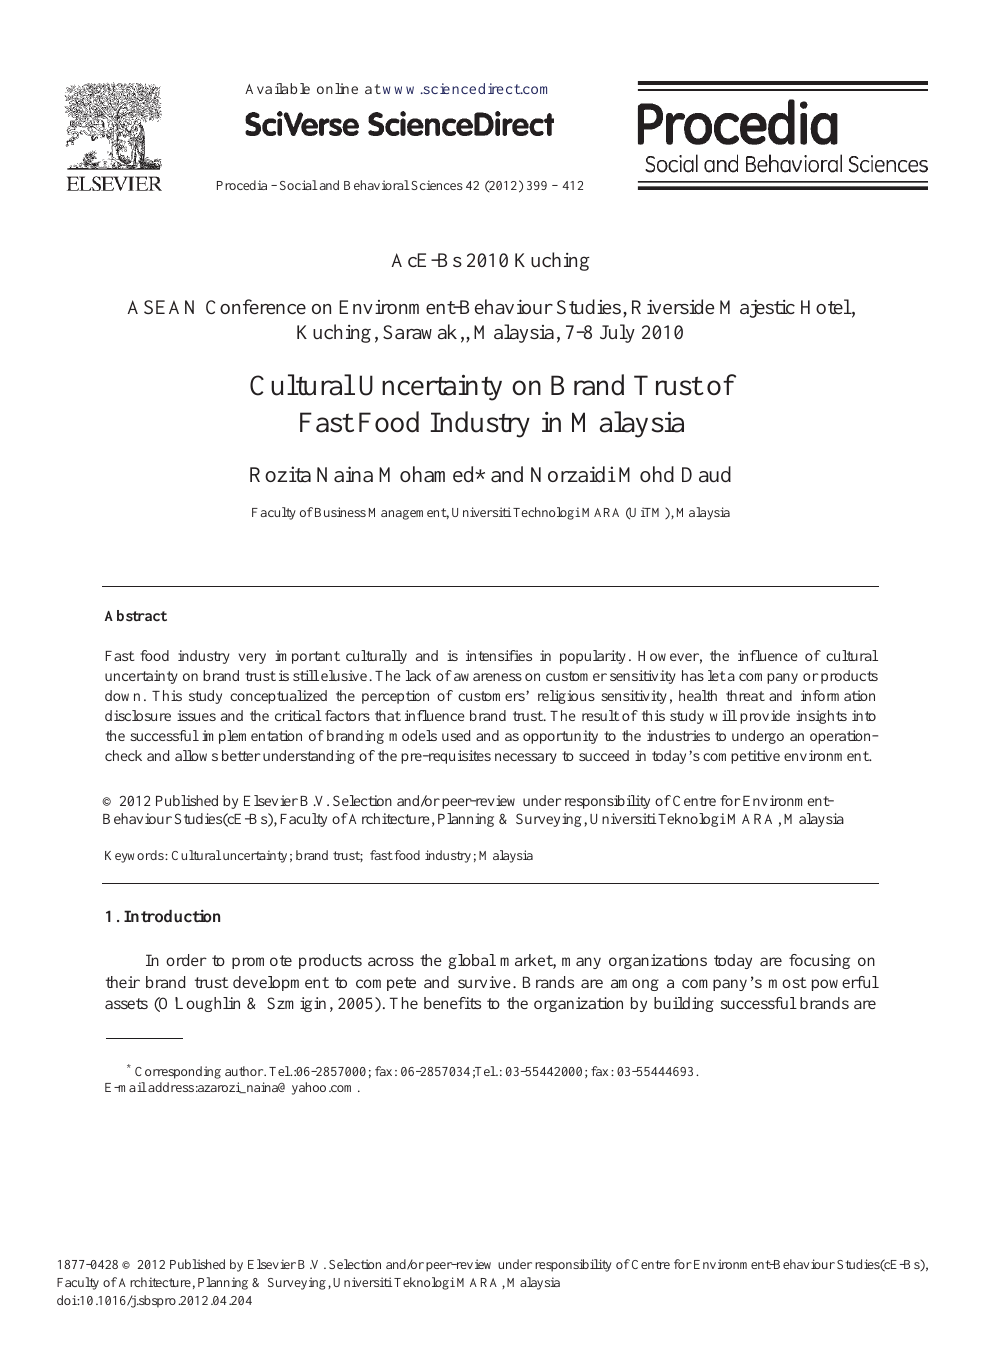 Cultural Uncertainty on Brand Trust of Fast Food Industry in